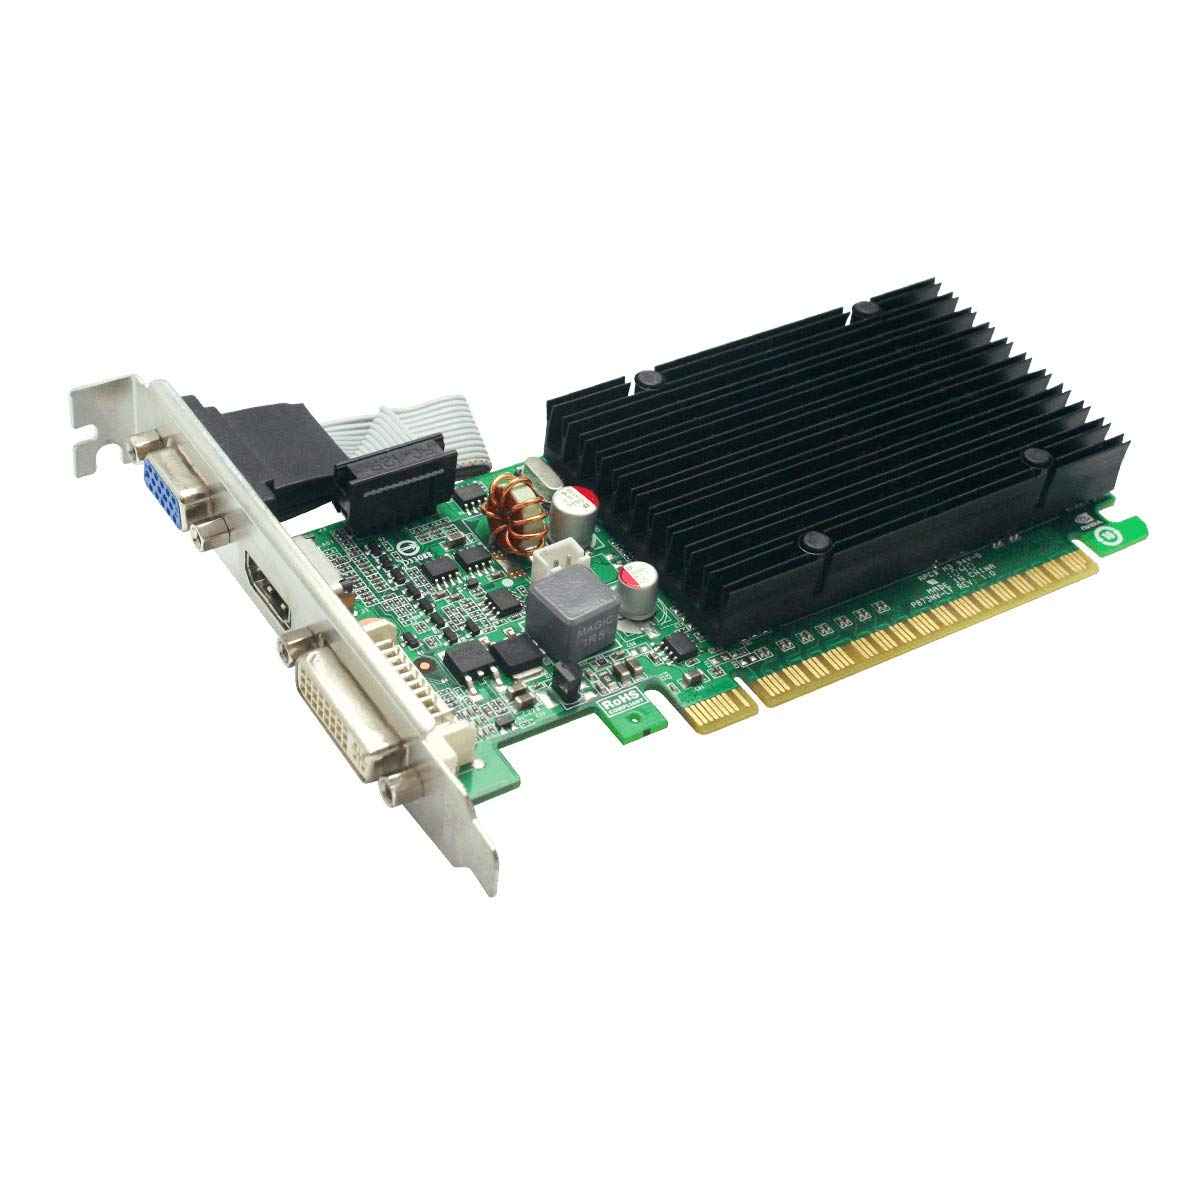 EVGA GeForce 210 Passive 1024 MB DDR3 PCI Express 2.0 DVI/HDMI/VGA Graphics Card, 01G-P3-1313-KR by EVGA (Image #3)